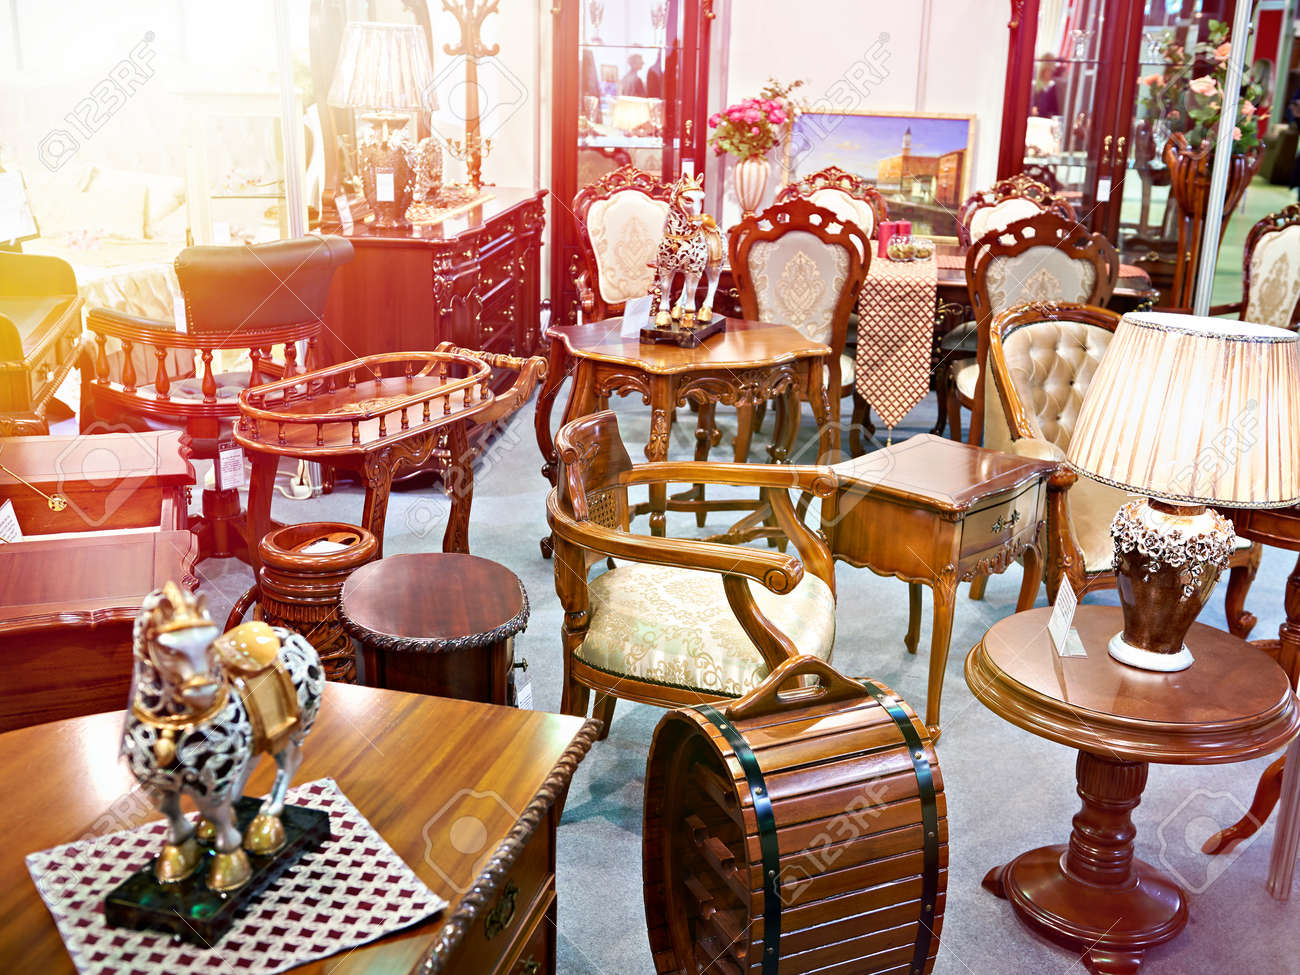 Antique Furniture Store With Wooden Goods Stock Photo Picture And Royalty Free Image Image 113006399